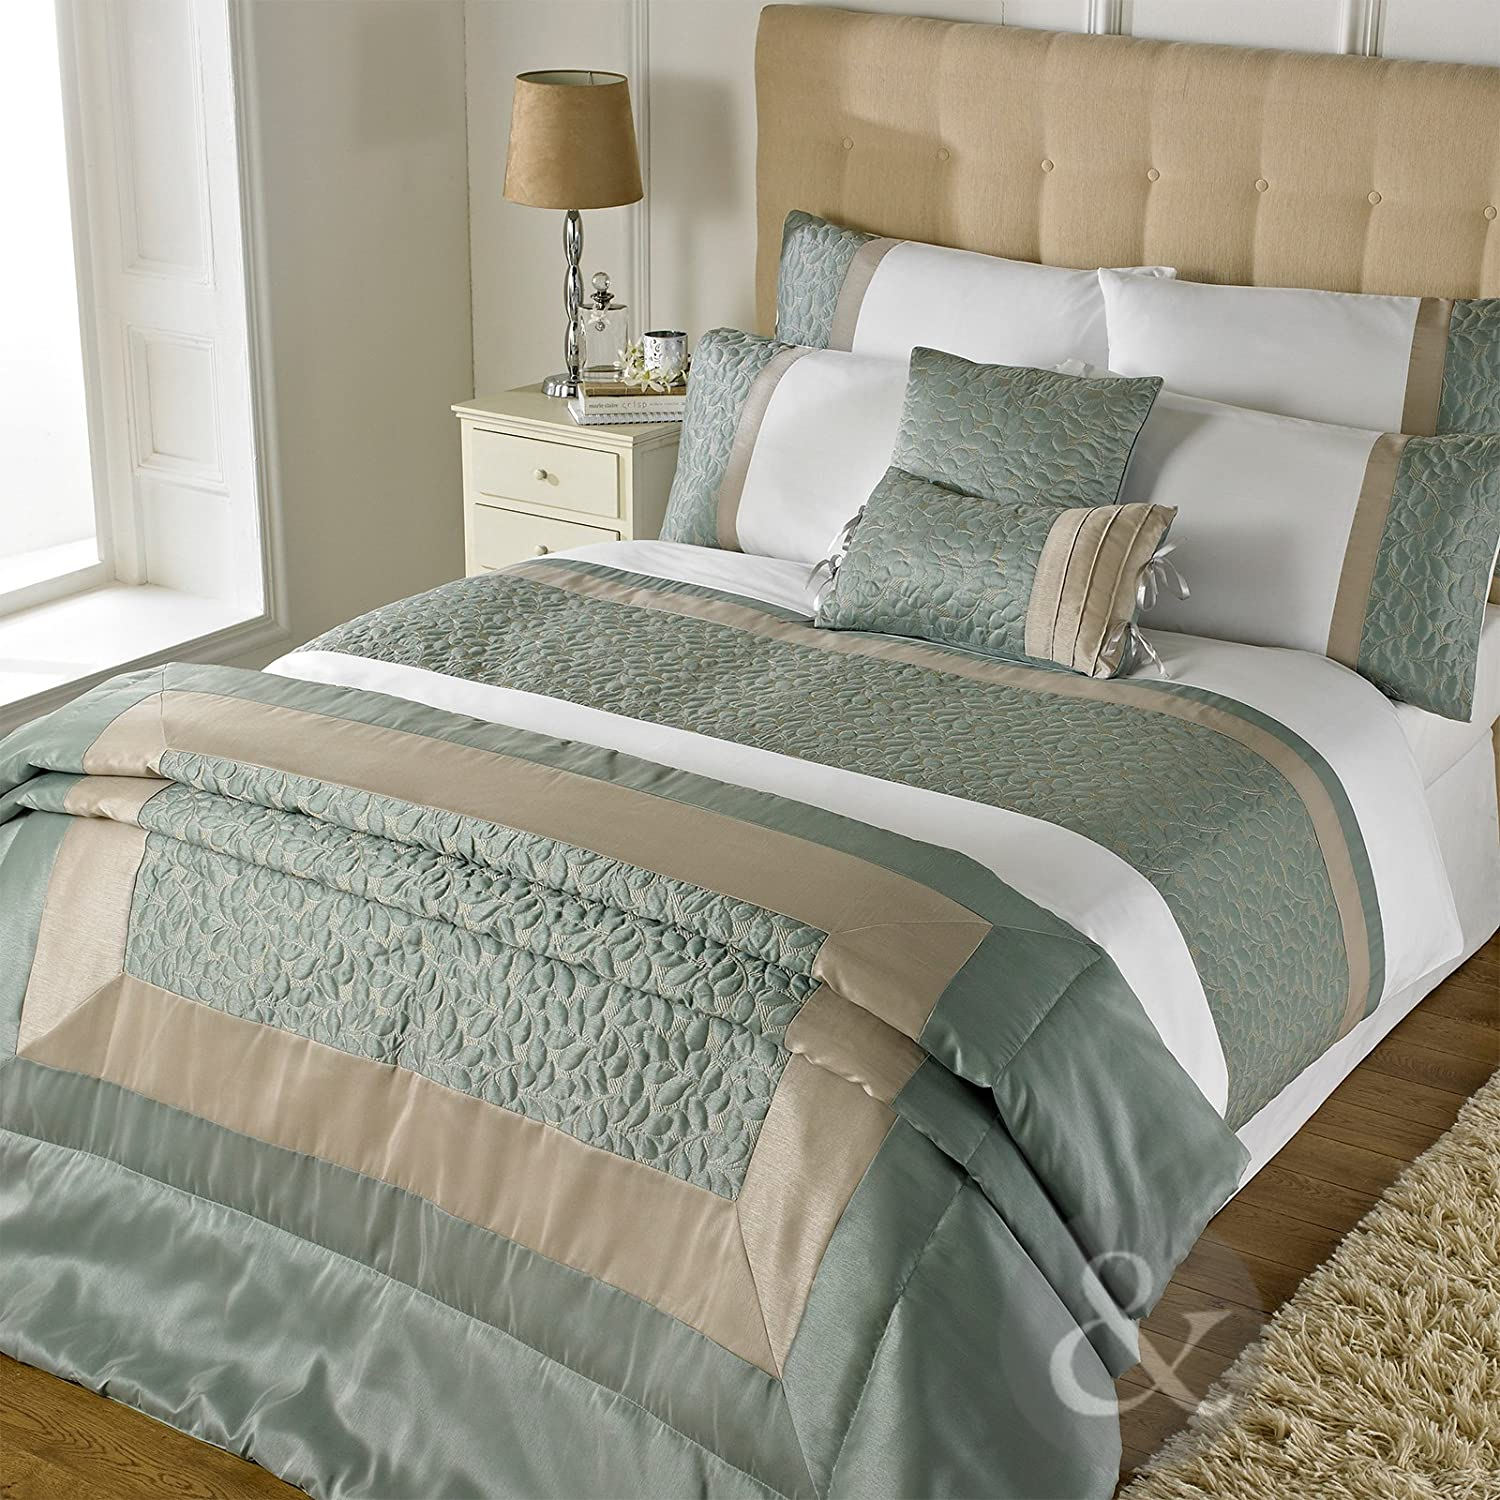 Just Contempo Leaf Embossed Duvet Cover Set Cotton Blend Duck Egg